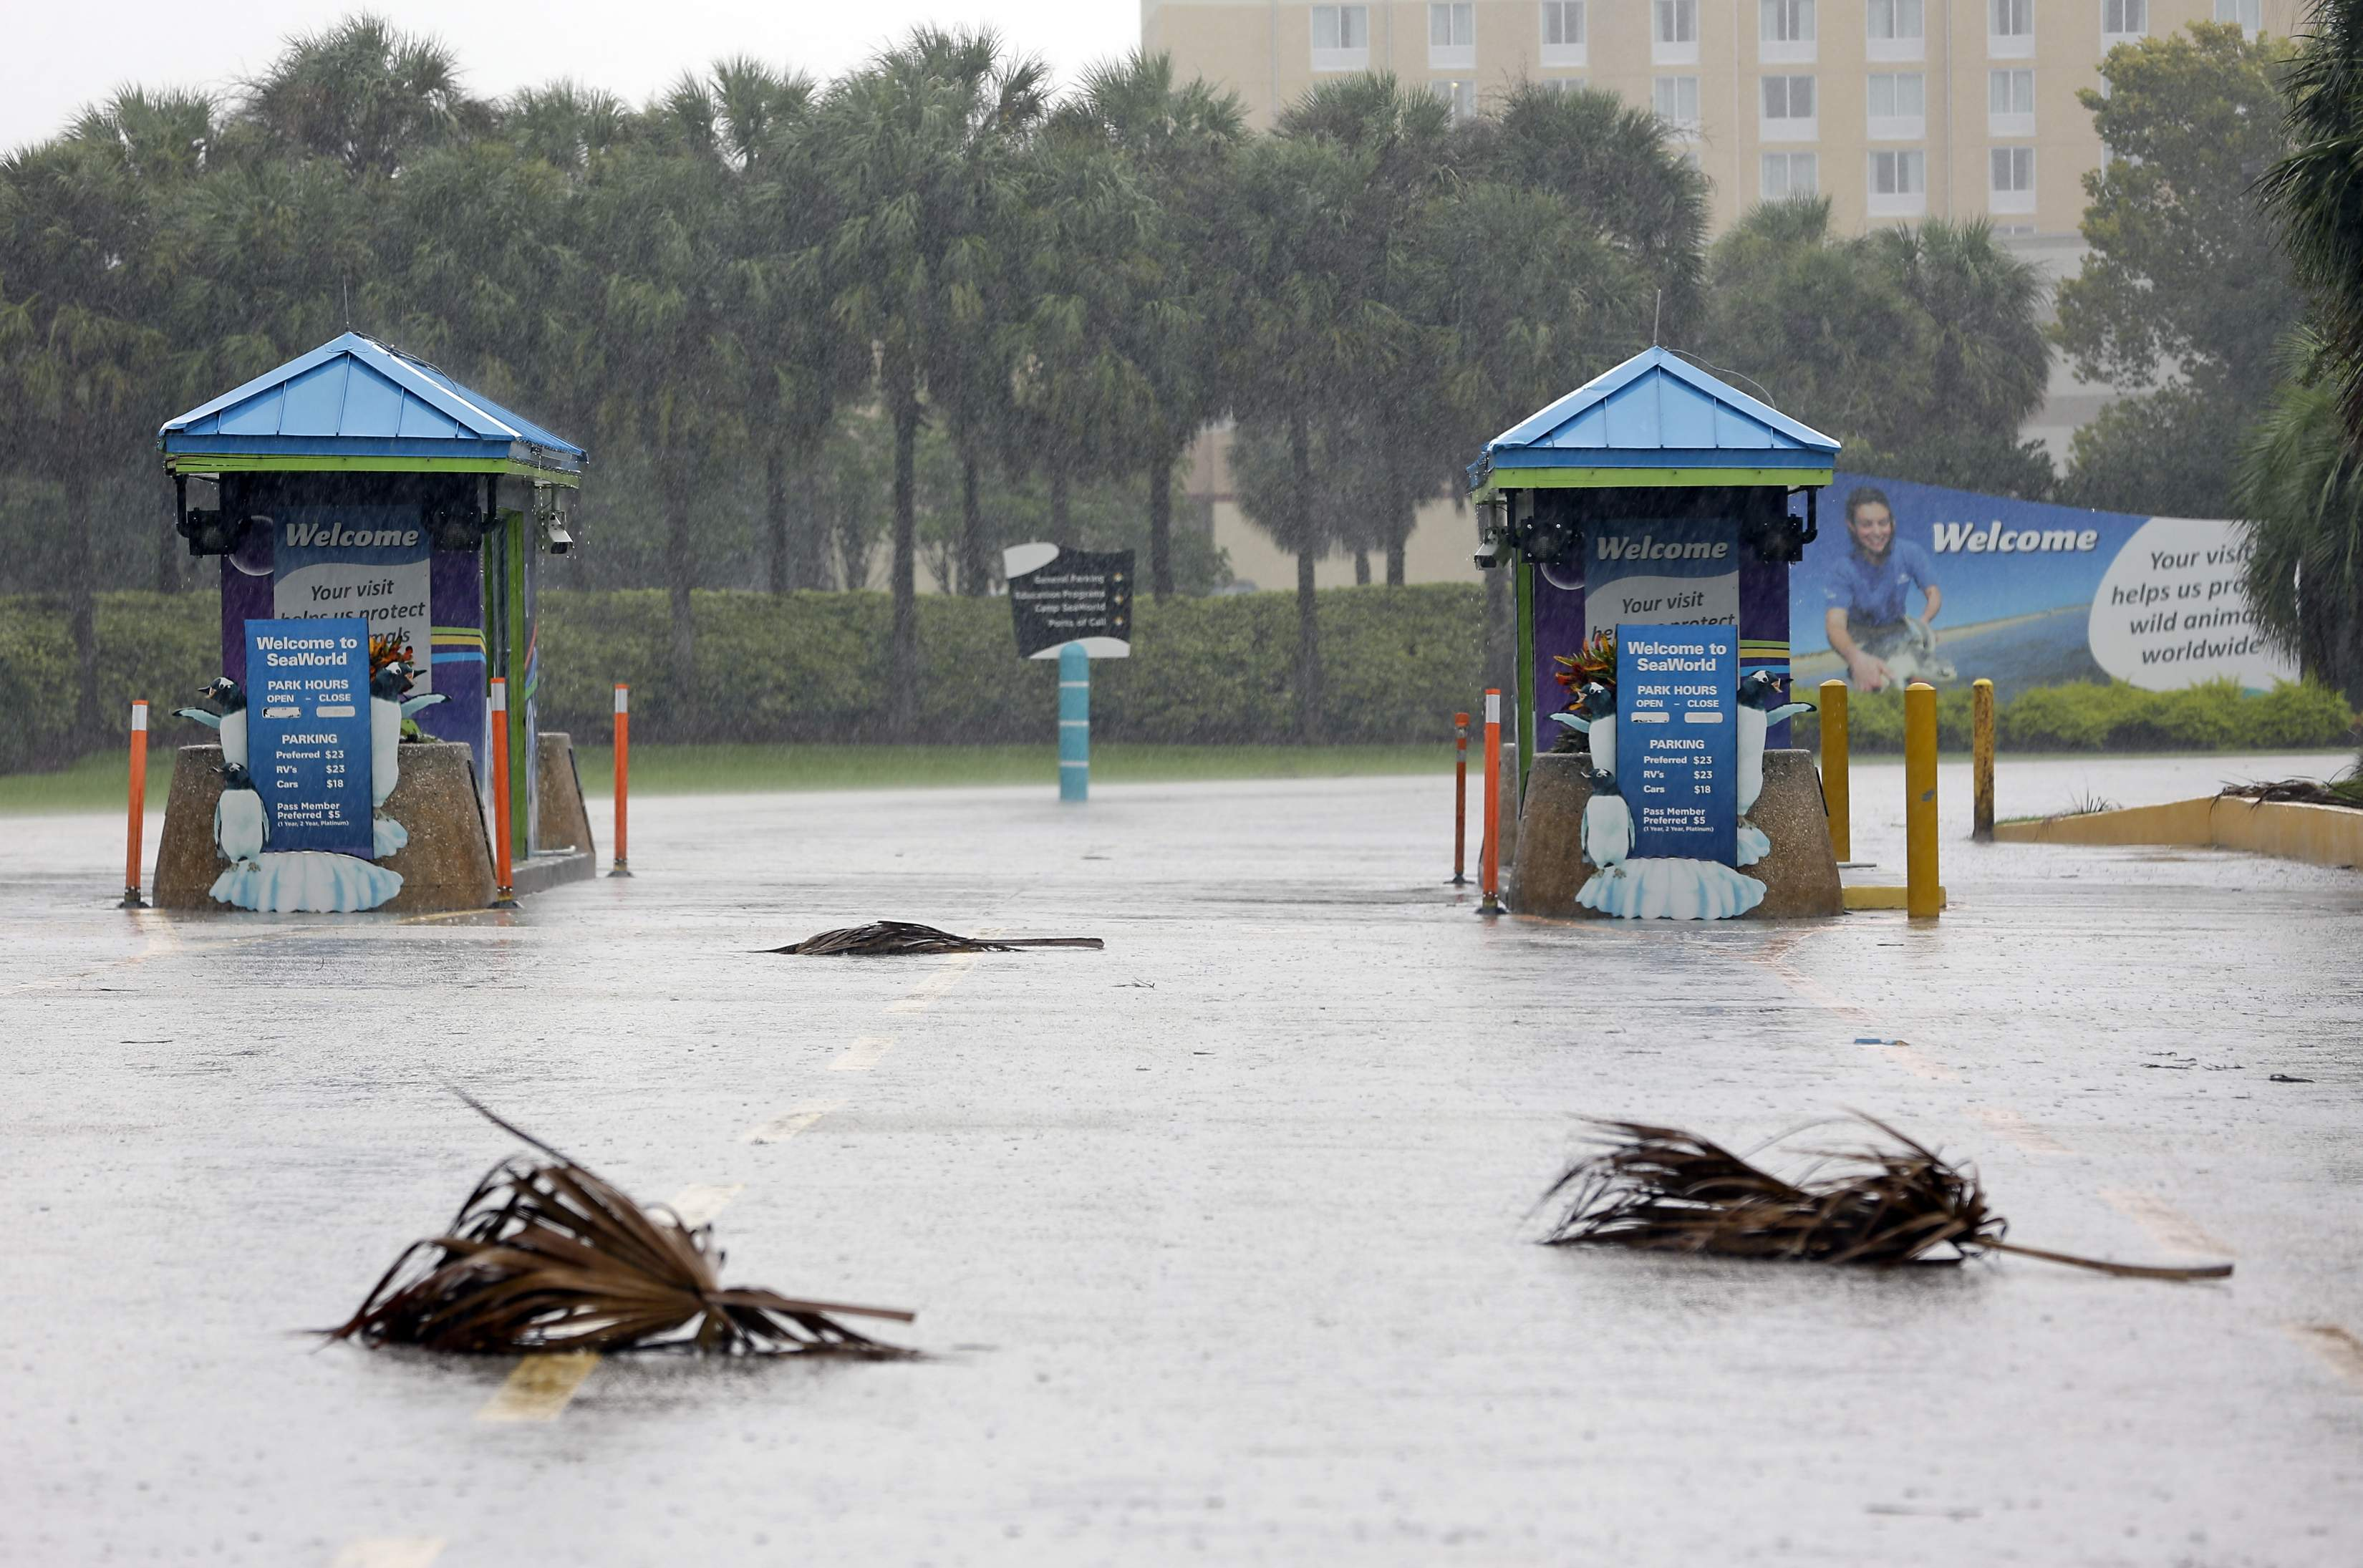 The entrance to the Sea World of Orlando is closed because of Hurricane Irma approaching the central Florida area, Sunday, Sept. 10, 2017, in Orlando, Fla. Other tourists attractions including Universal Studios and Disney World were also closed and planned to reopen Tuesday. (AP Photo/John Raoux)